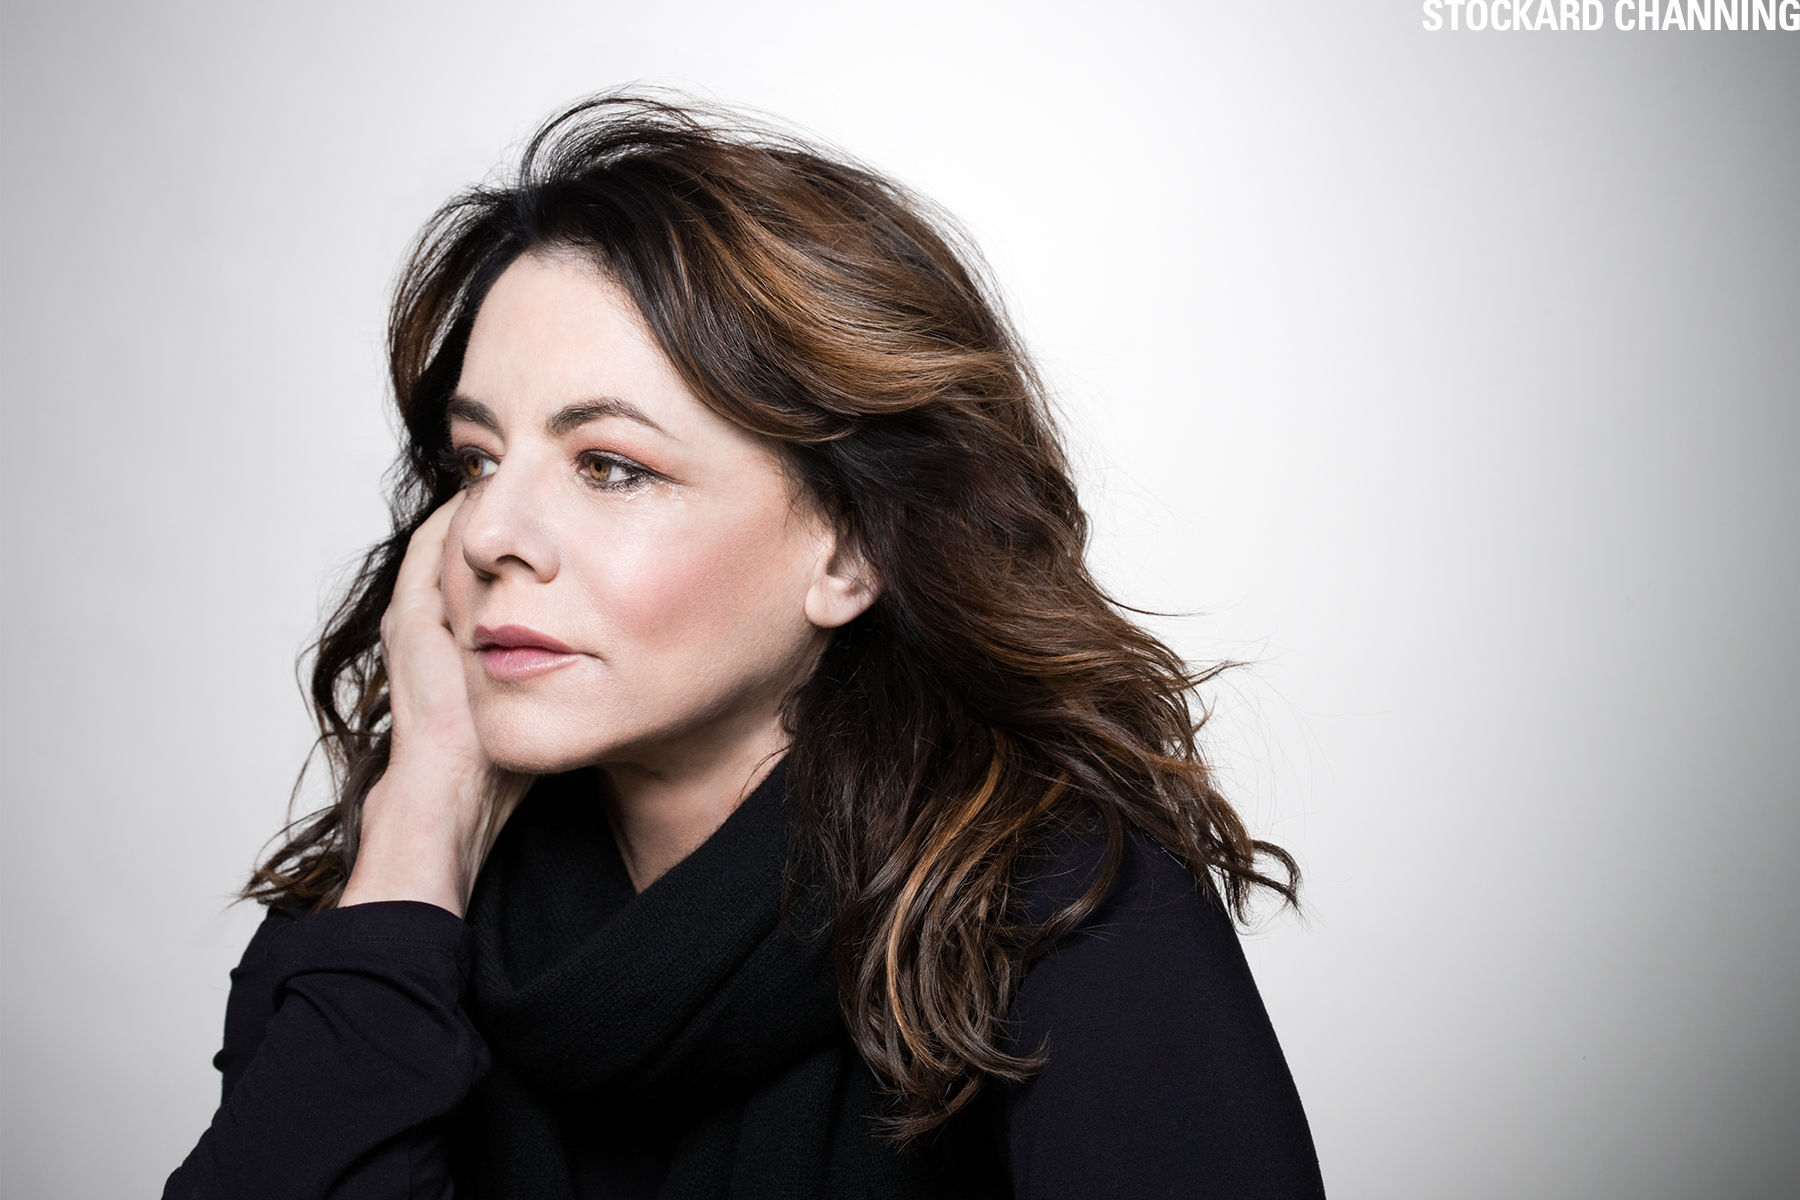 American actress, Stockard Channing